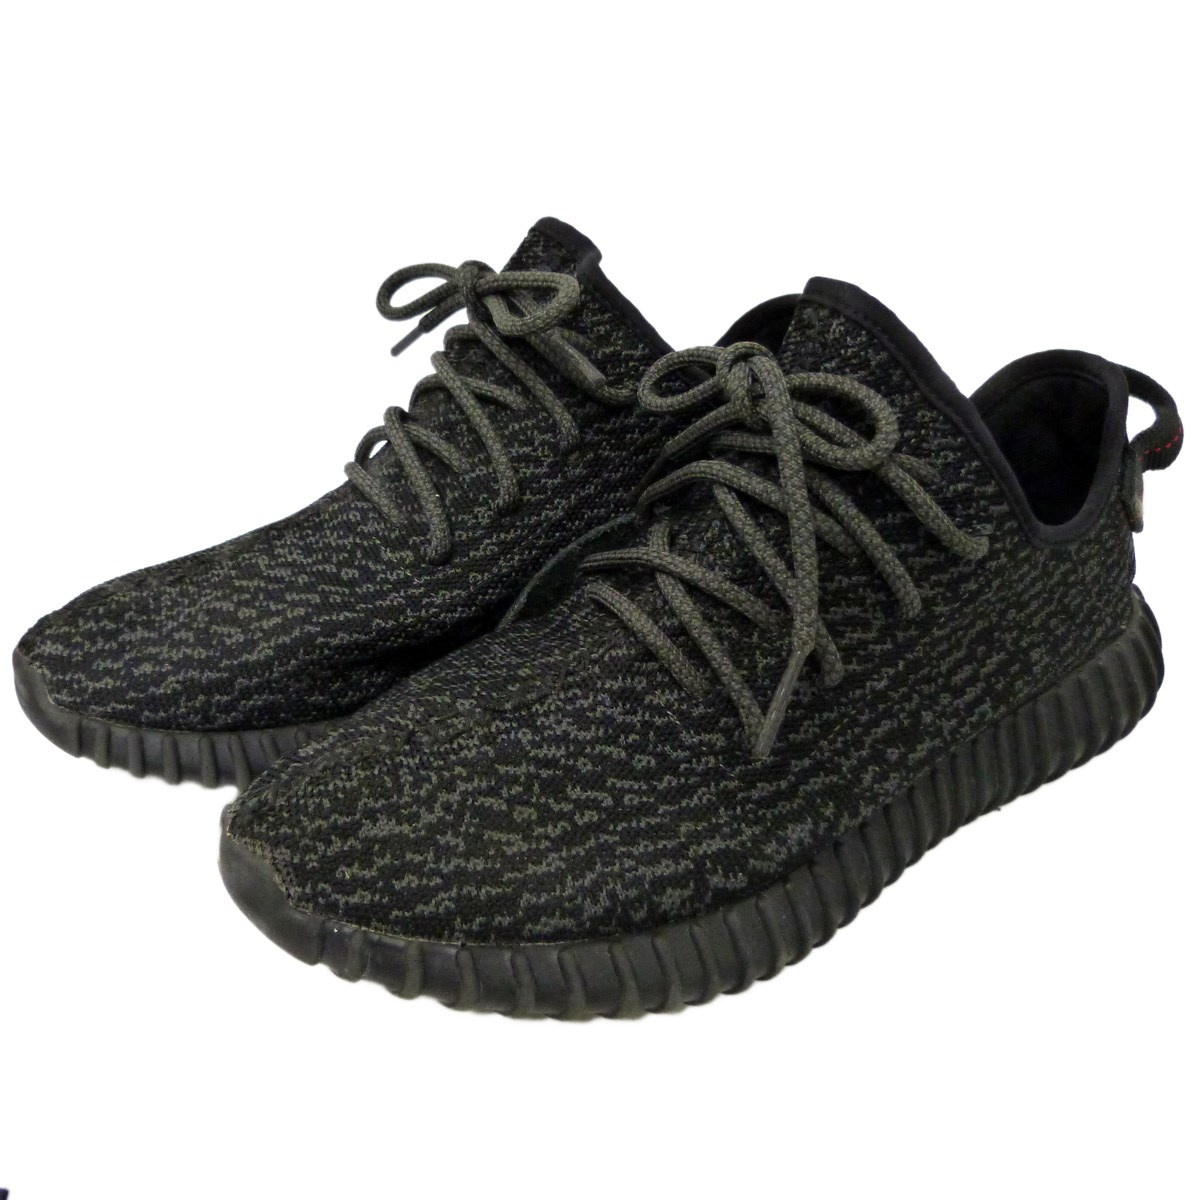 Adidas x Kanye west yeezy boost 350 black **Sold** Boutique